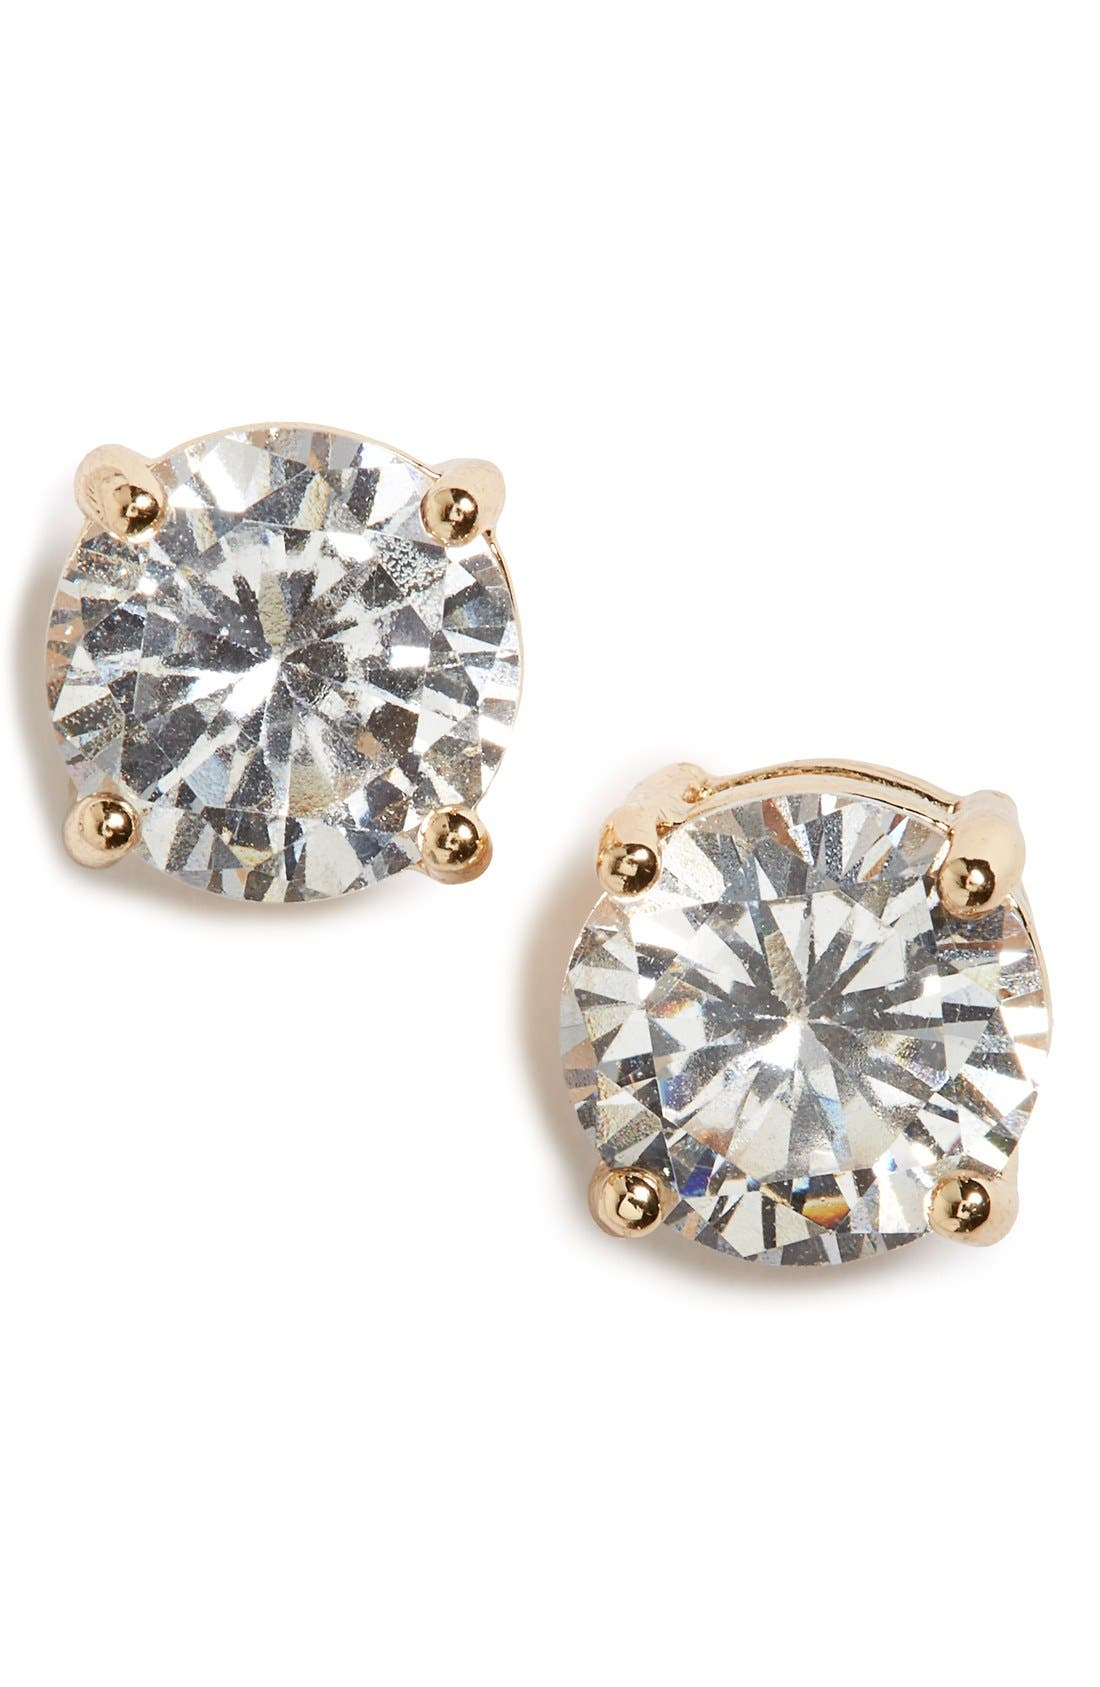 Cubic Zirconia Stud Earrings,                         Main,                         color, Gold/ Crystal